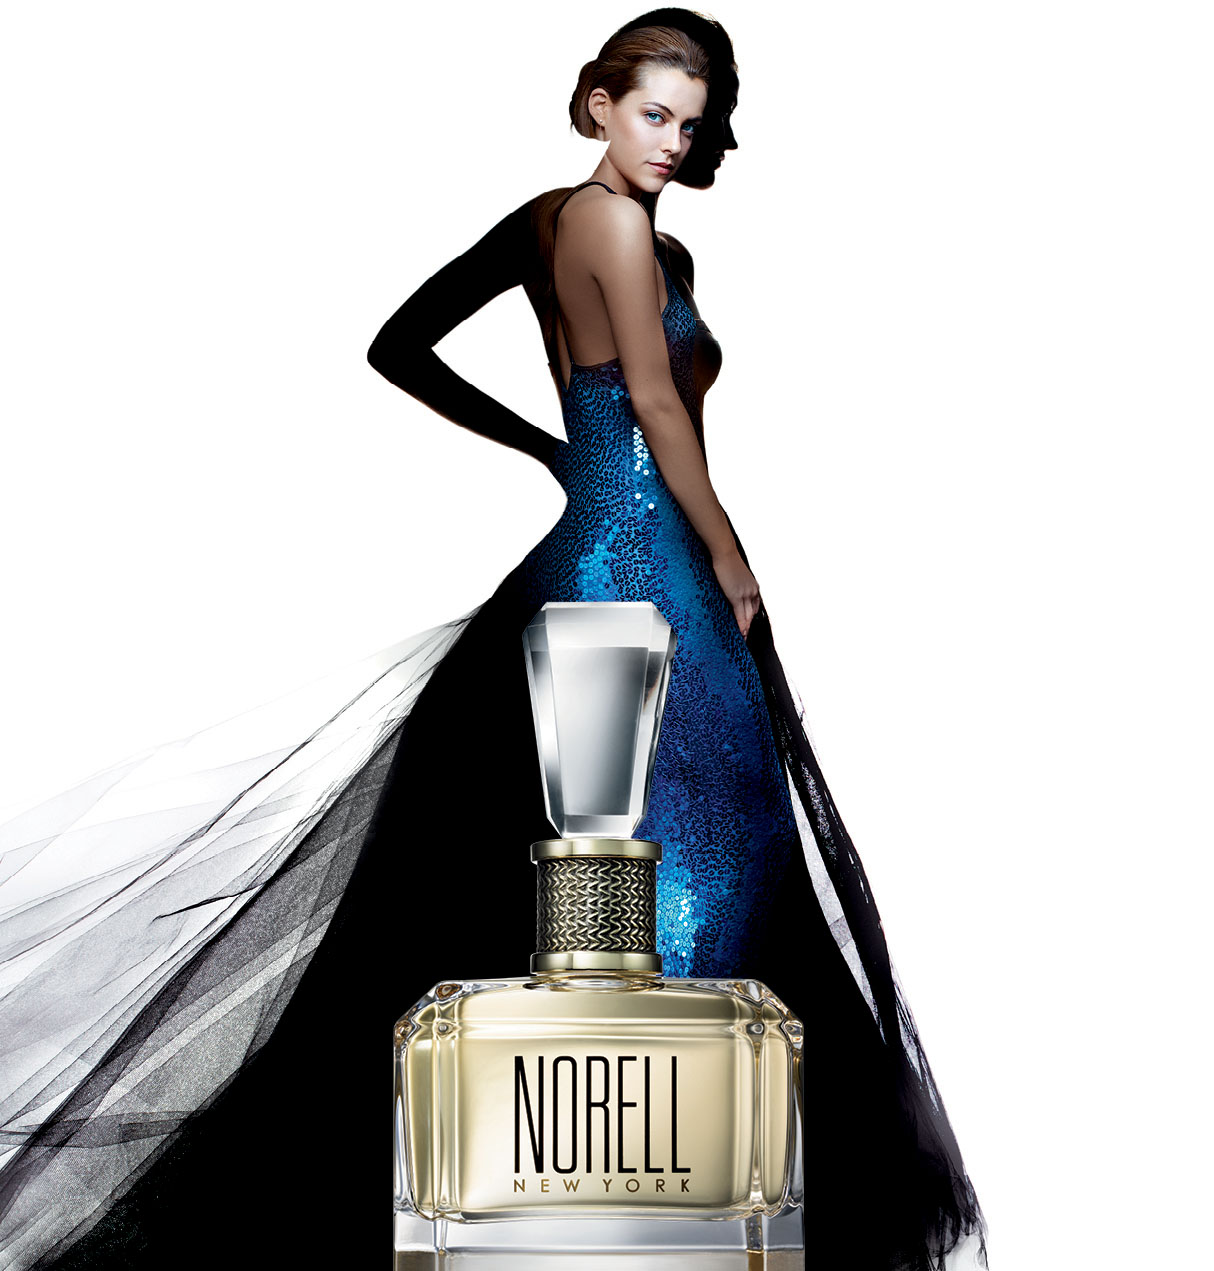 Norell Brand Image